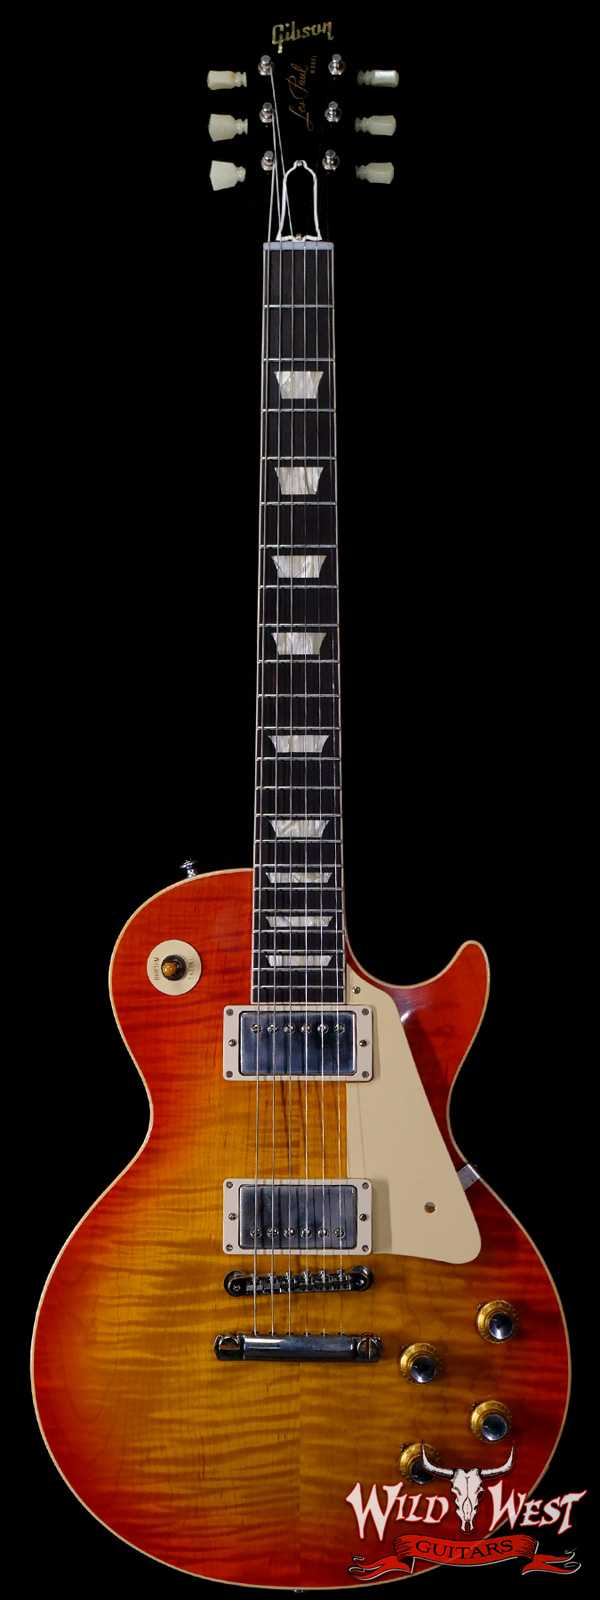 Gibson Custom Shop 60th Anniversary 1960 Les Paul Standard VOS V2 Orange Lemon Fade 8.35 LBS